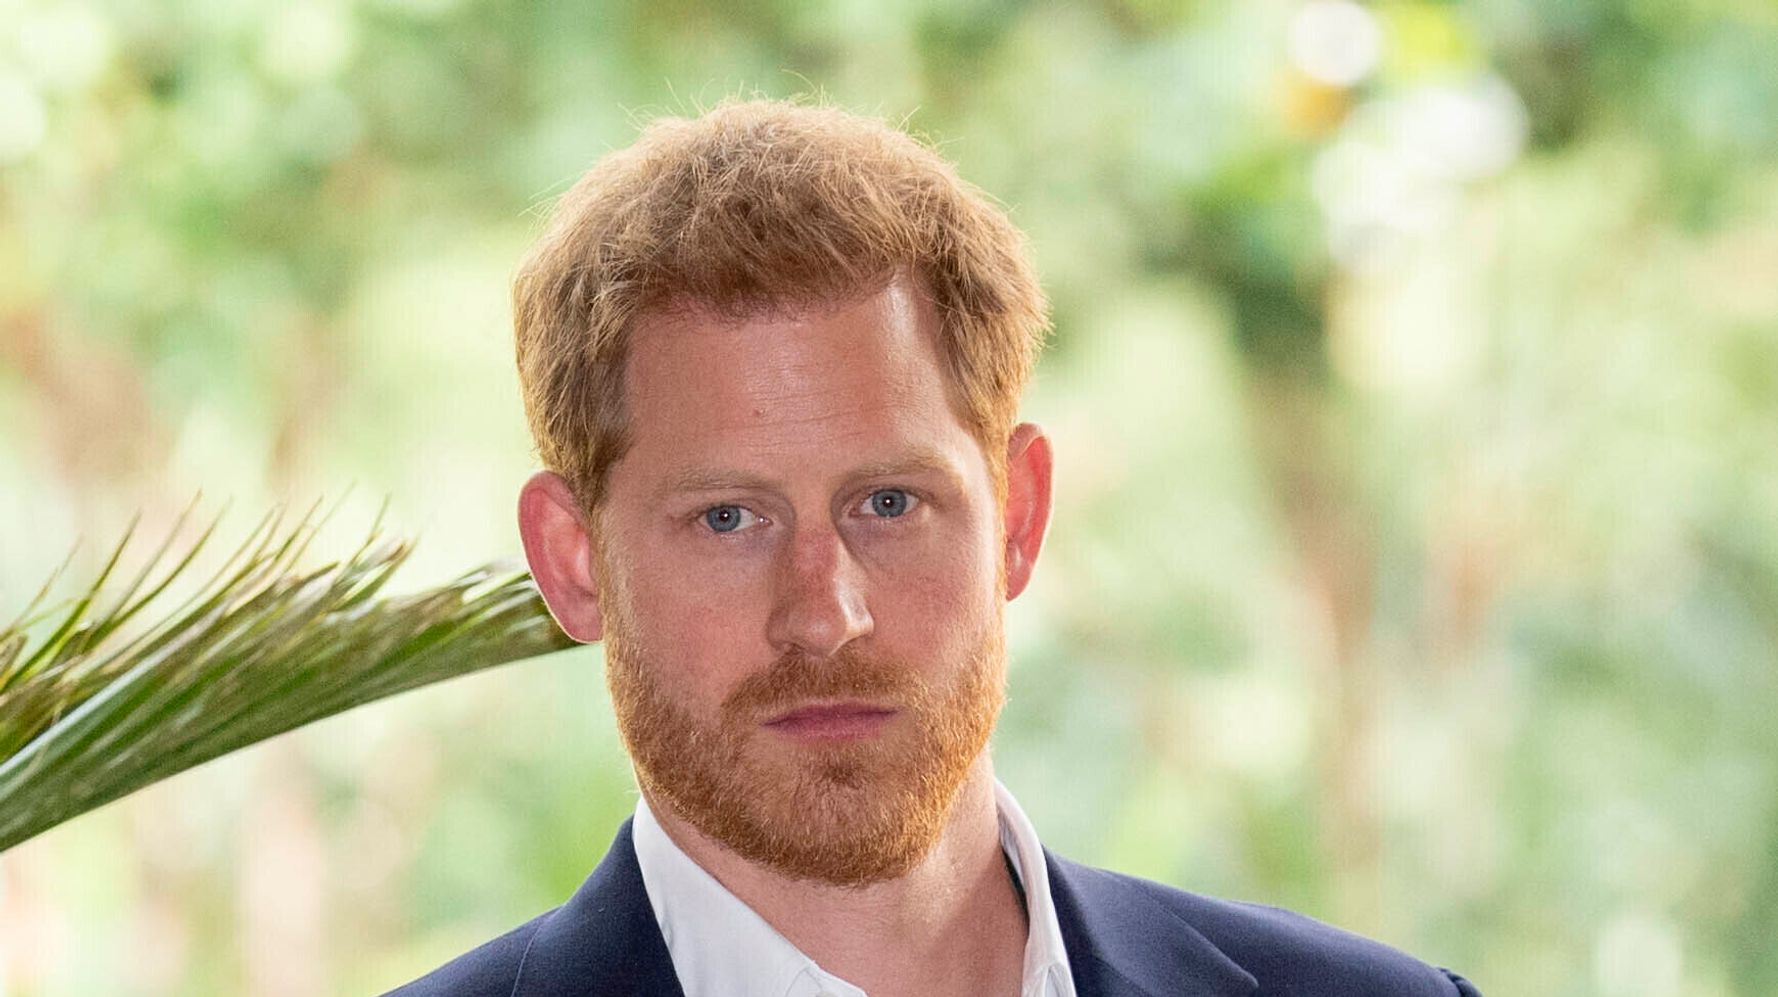 Westlake Legal Group 5d9785072100005100a9530a Prince Harry Sues 2 UK Newspapers For Alleged Phone Hacking